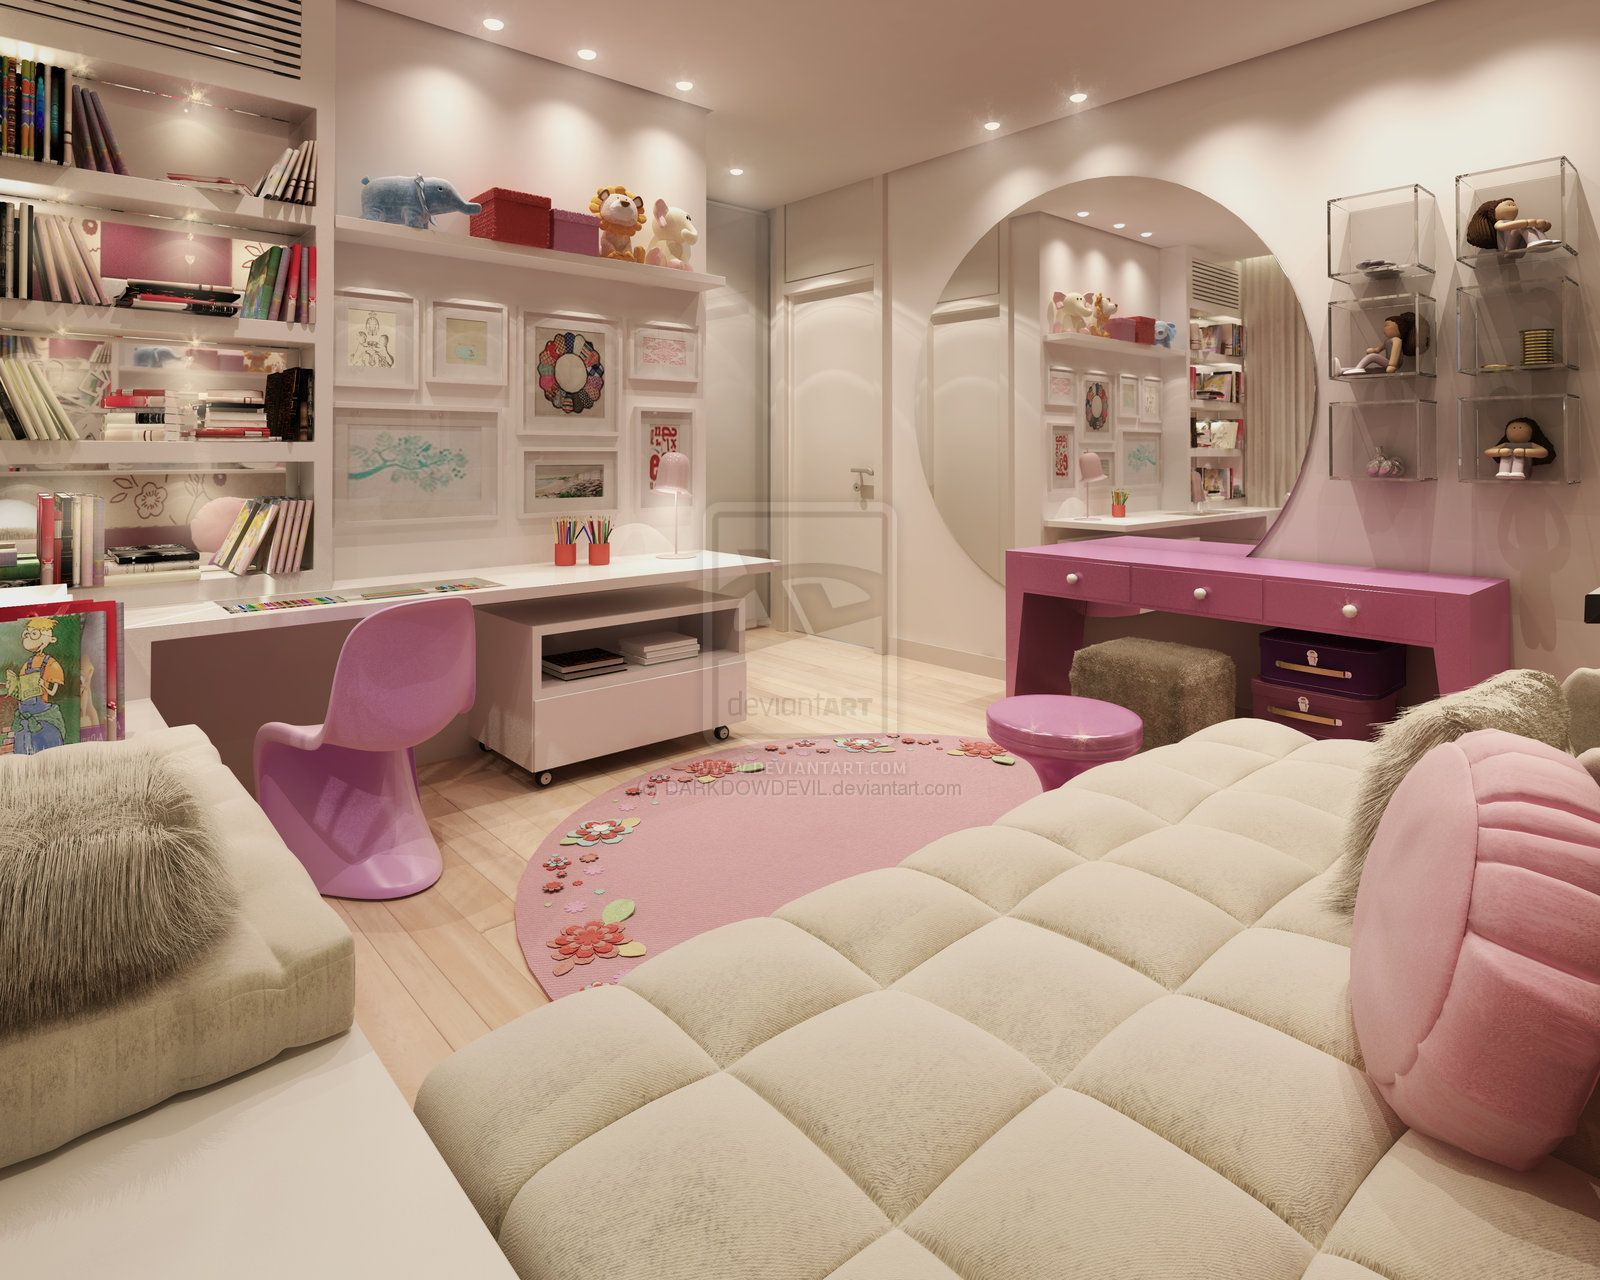 Teenage Girl Room Ideas Designs 50 room design ideas for teenage girls 30 Dream Interior Design Ideas For Teenage Girls Rooms